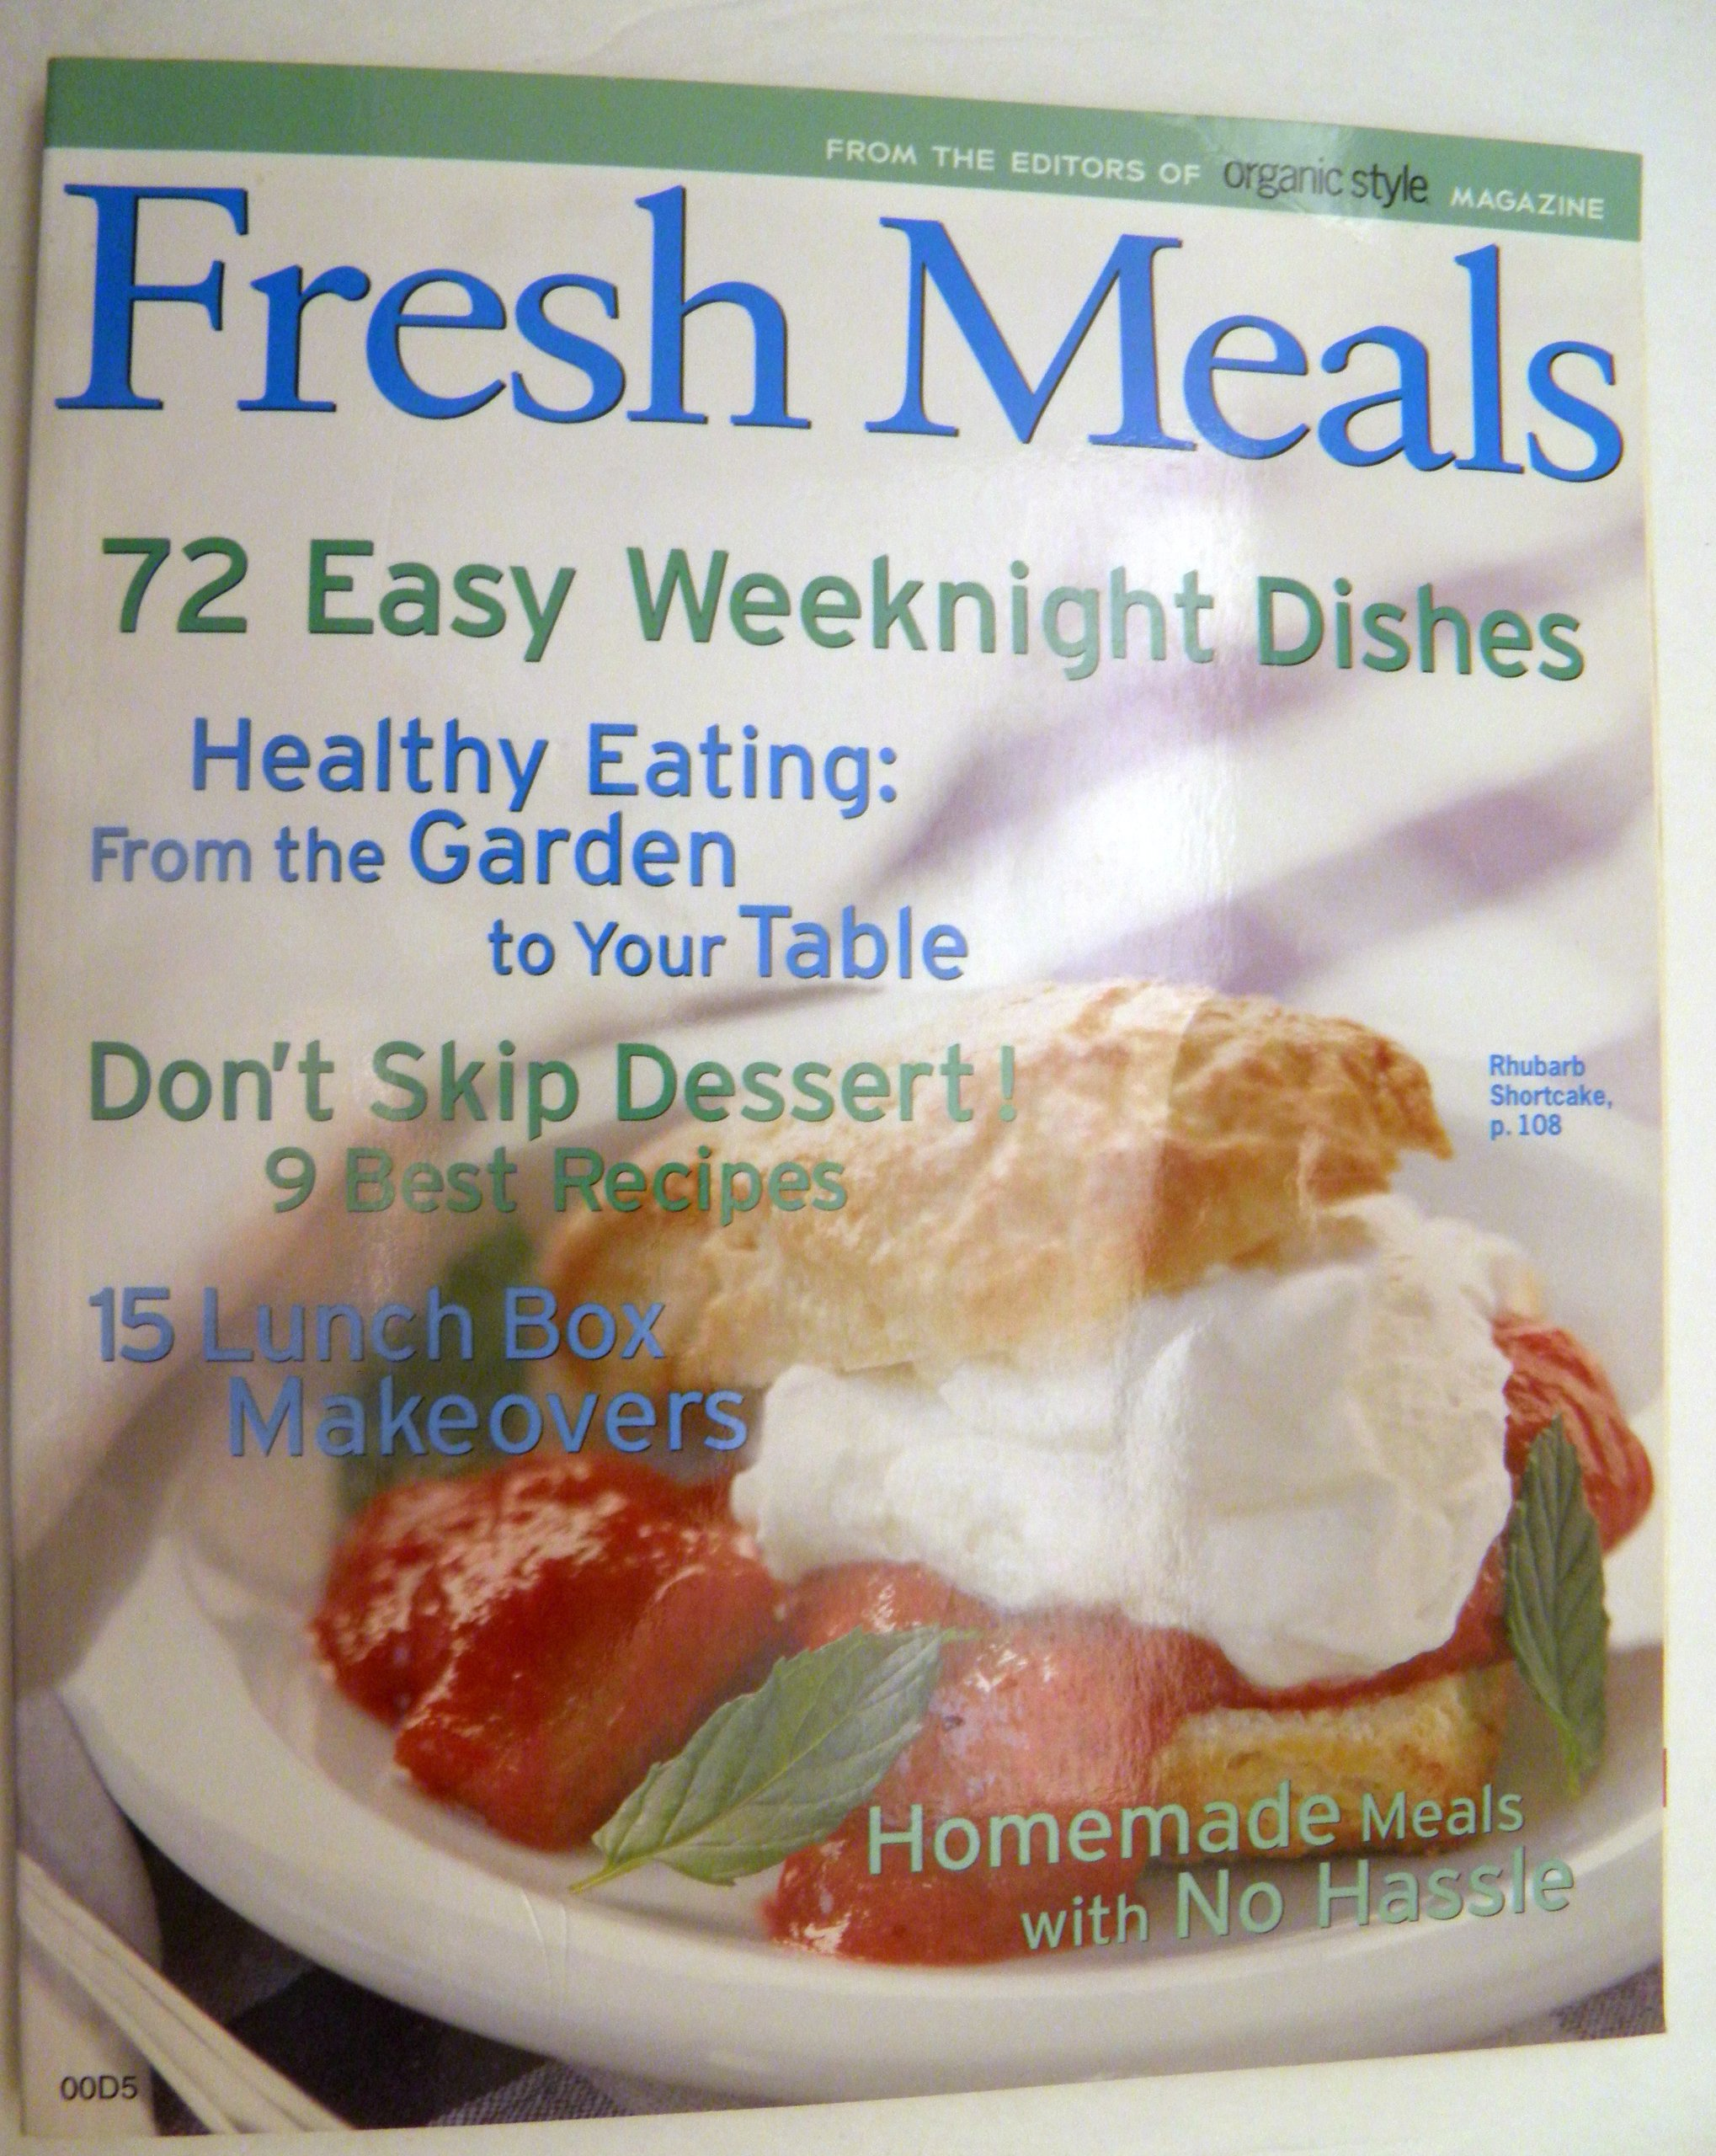 Download Fresh Meals From the Editors of Organic Style Magazine PDF